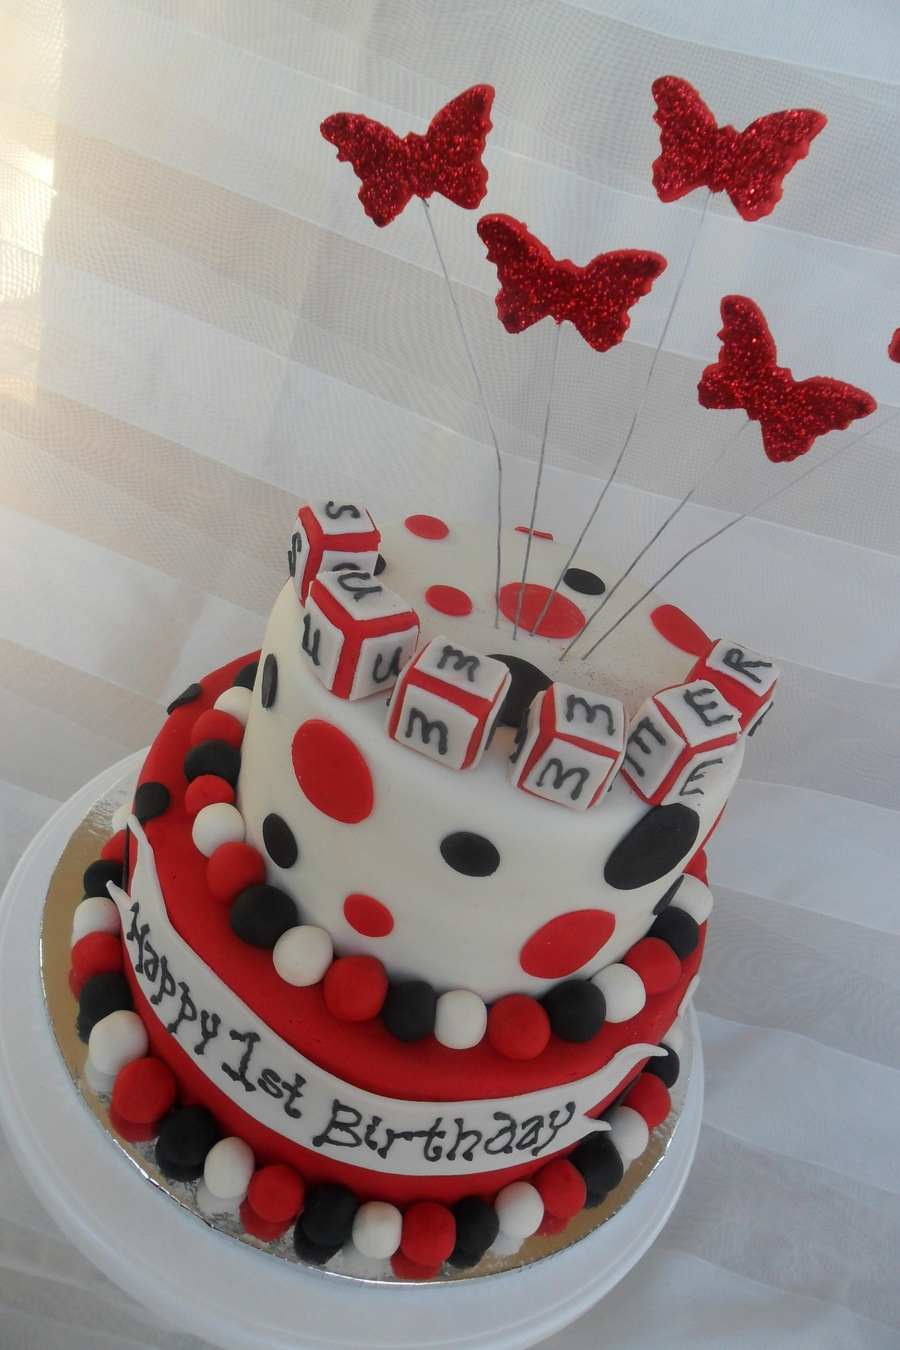 Red White Black Birthday Cake CakeCentralcom